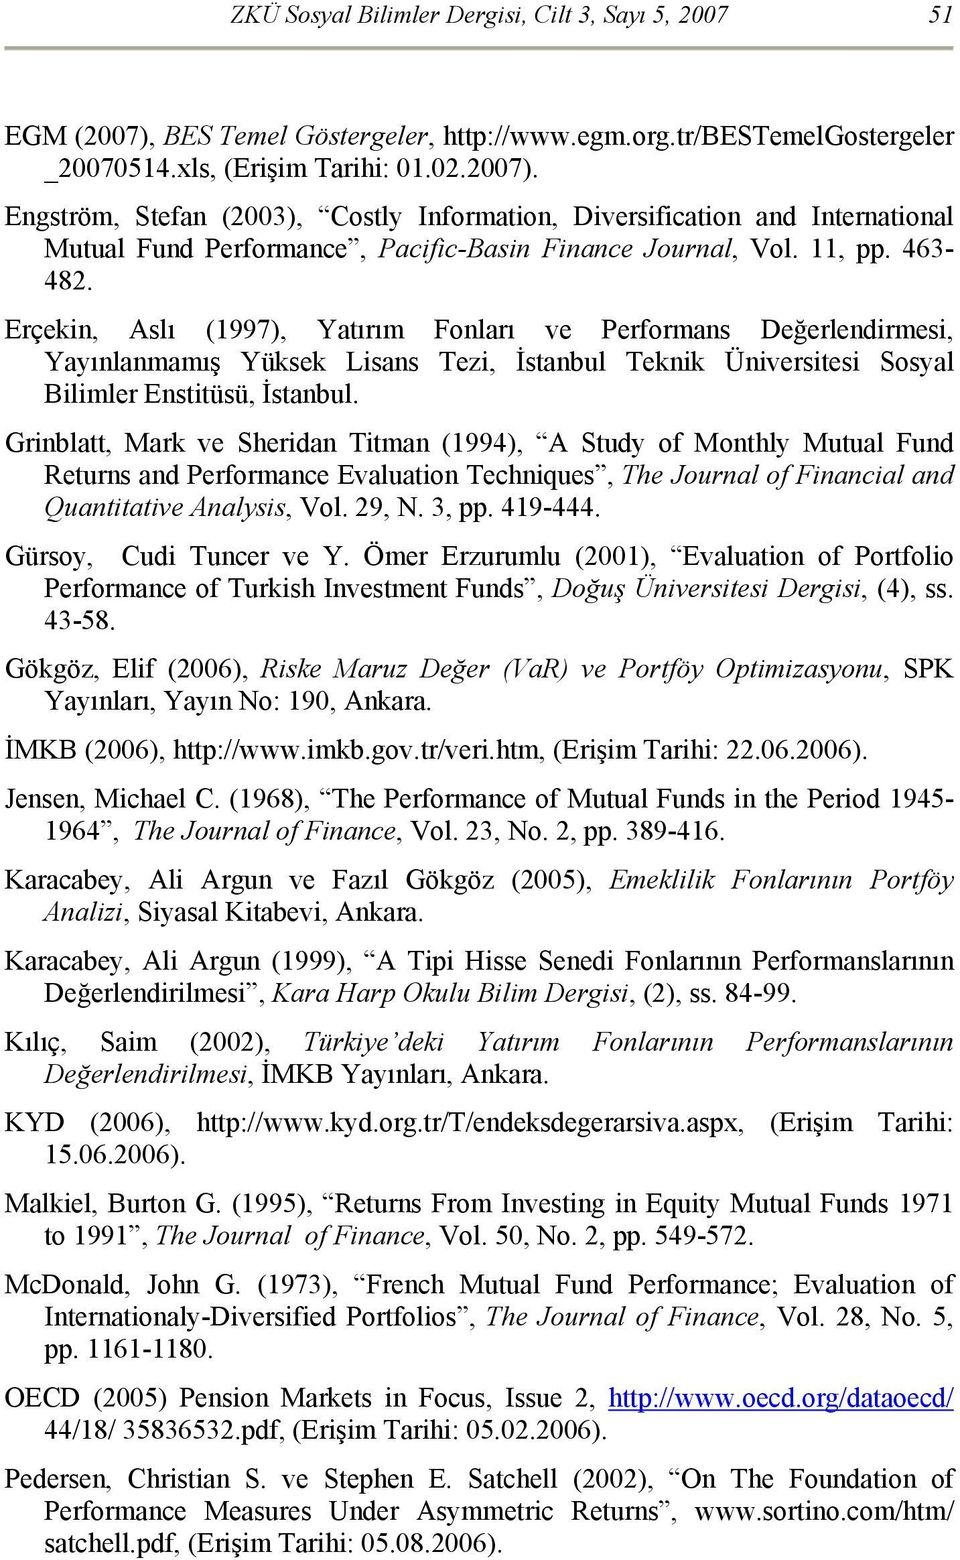 Engström, Stefan (2003), Costly Information, Diversification and International Mutual Fund Performance, Pacific-Basin Finance Journal, Vol. 11, pp. 463-482.